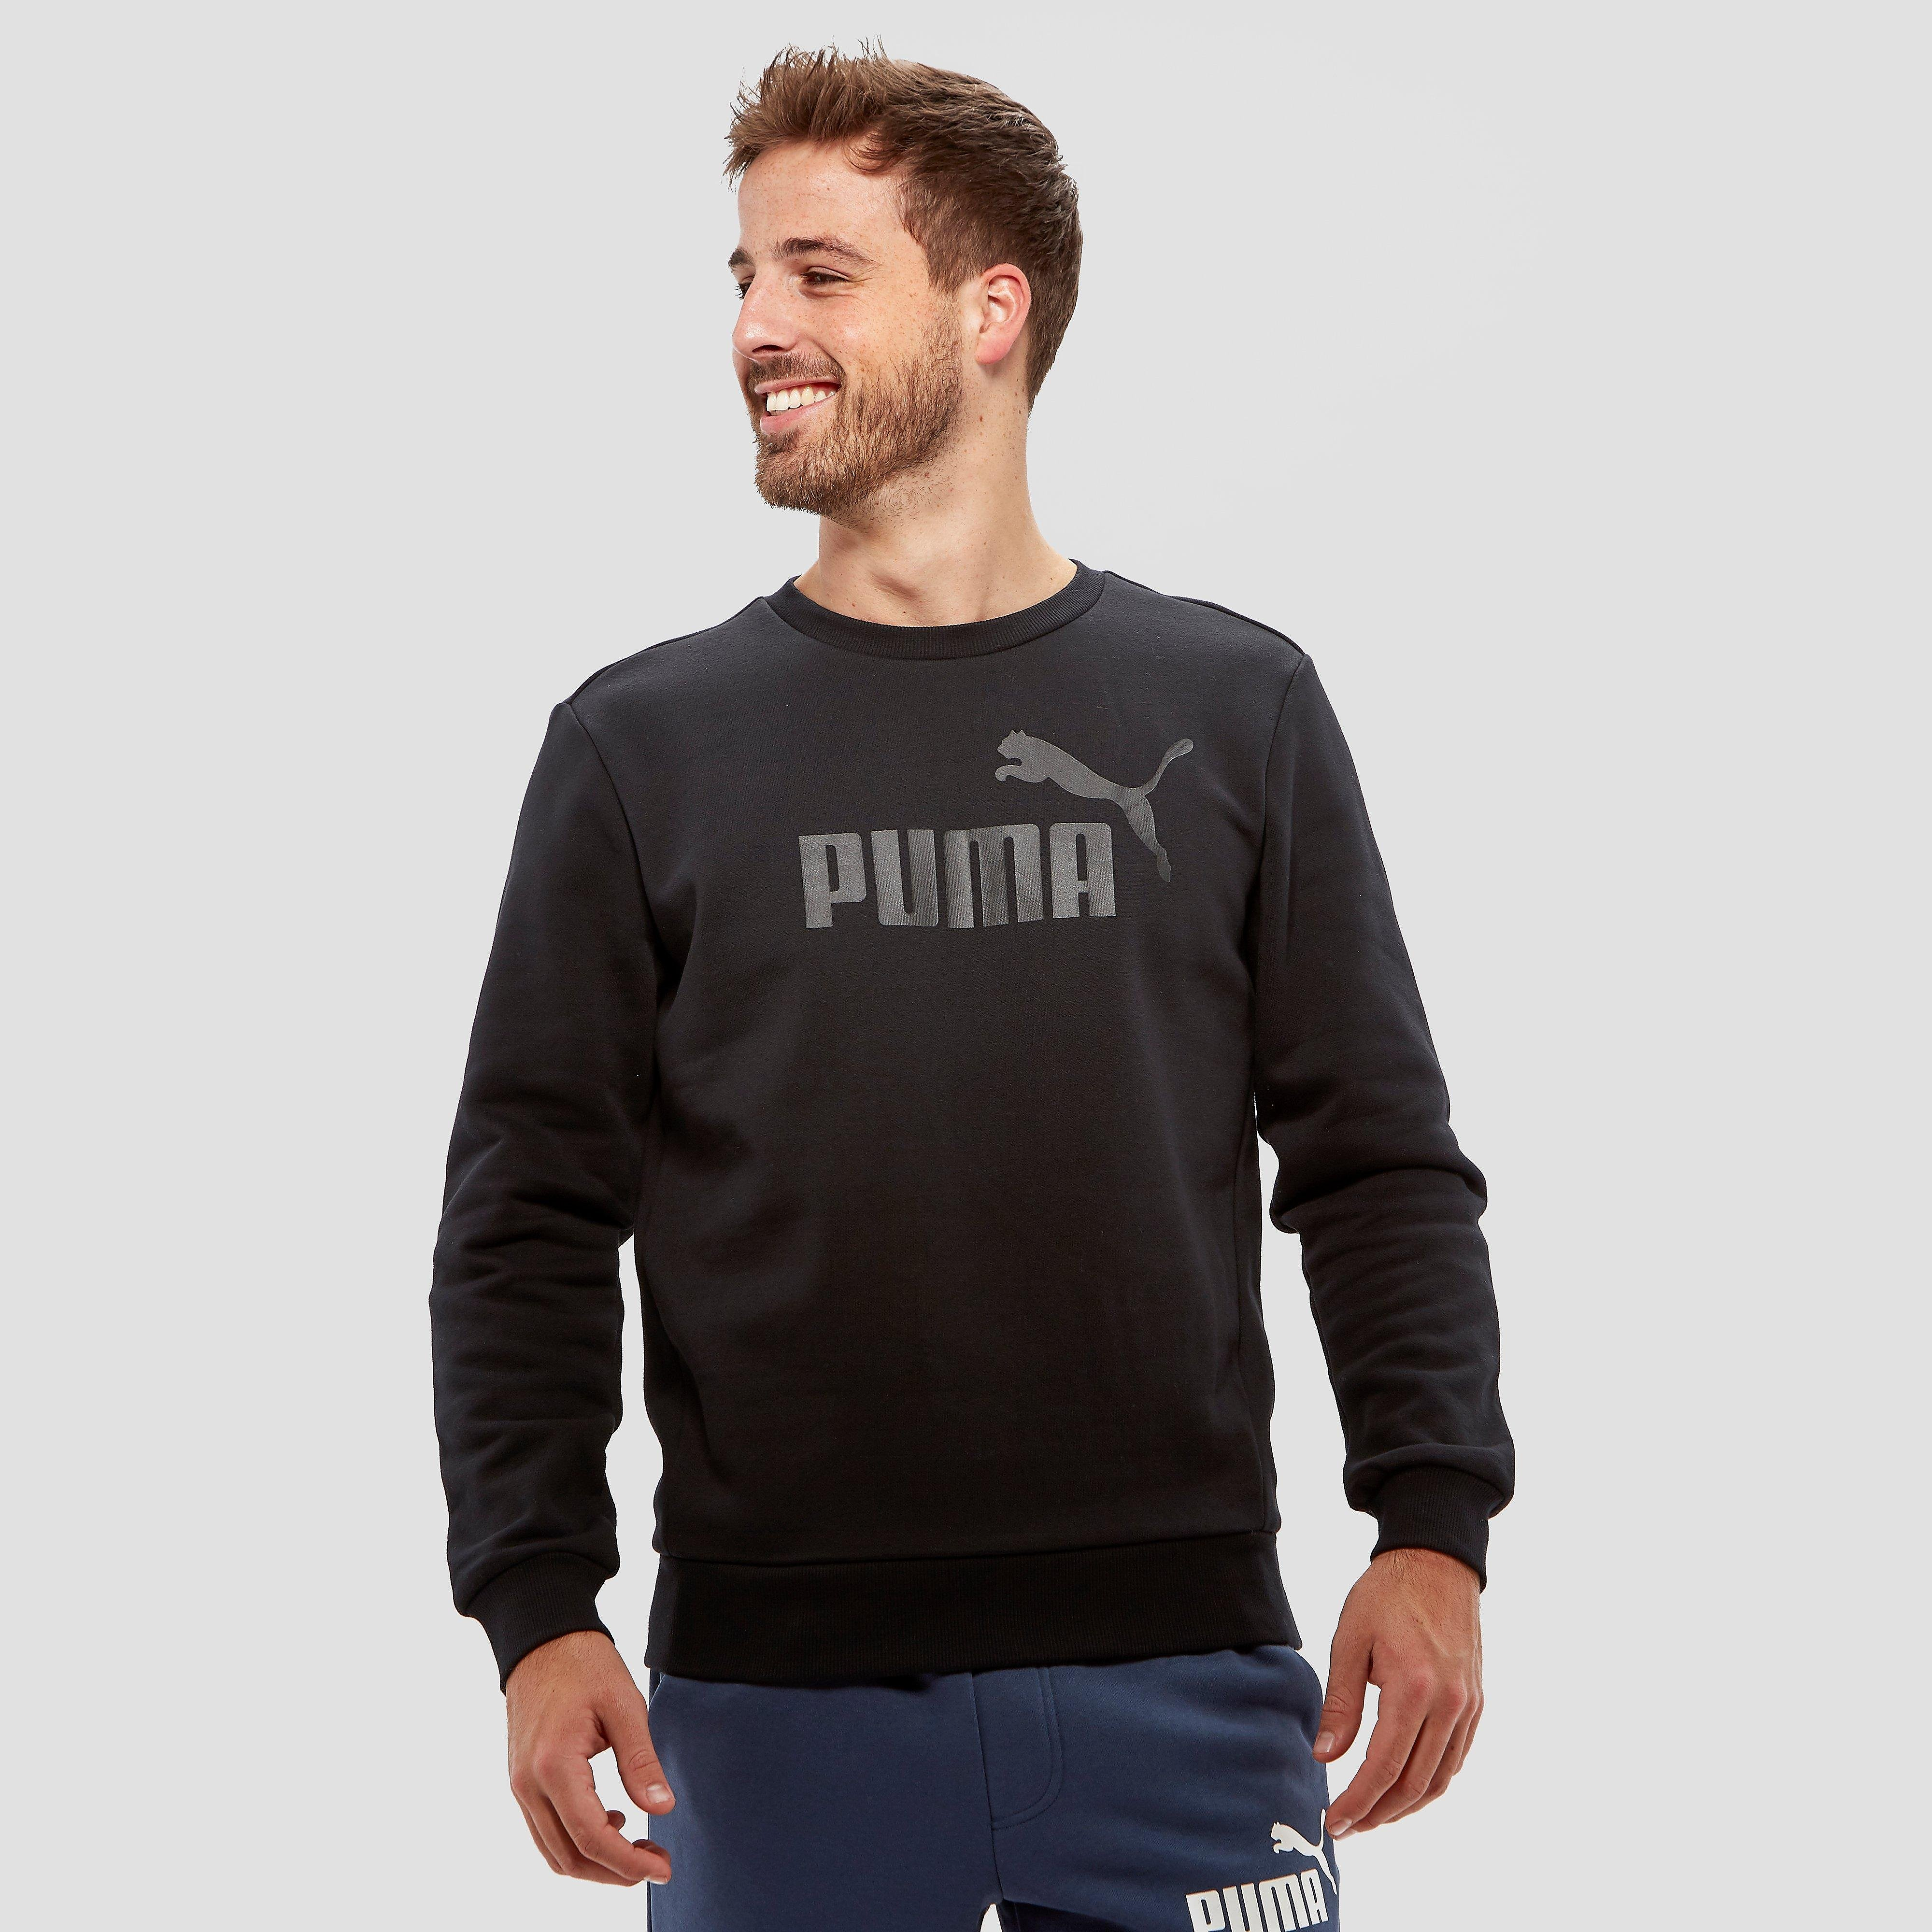 PUMA LOGO SWEATER ZWART HEREN